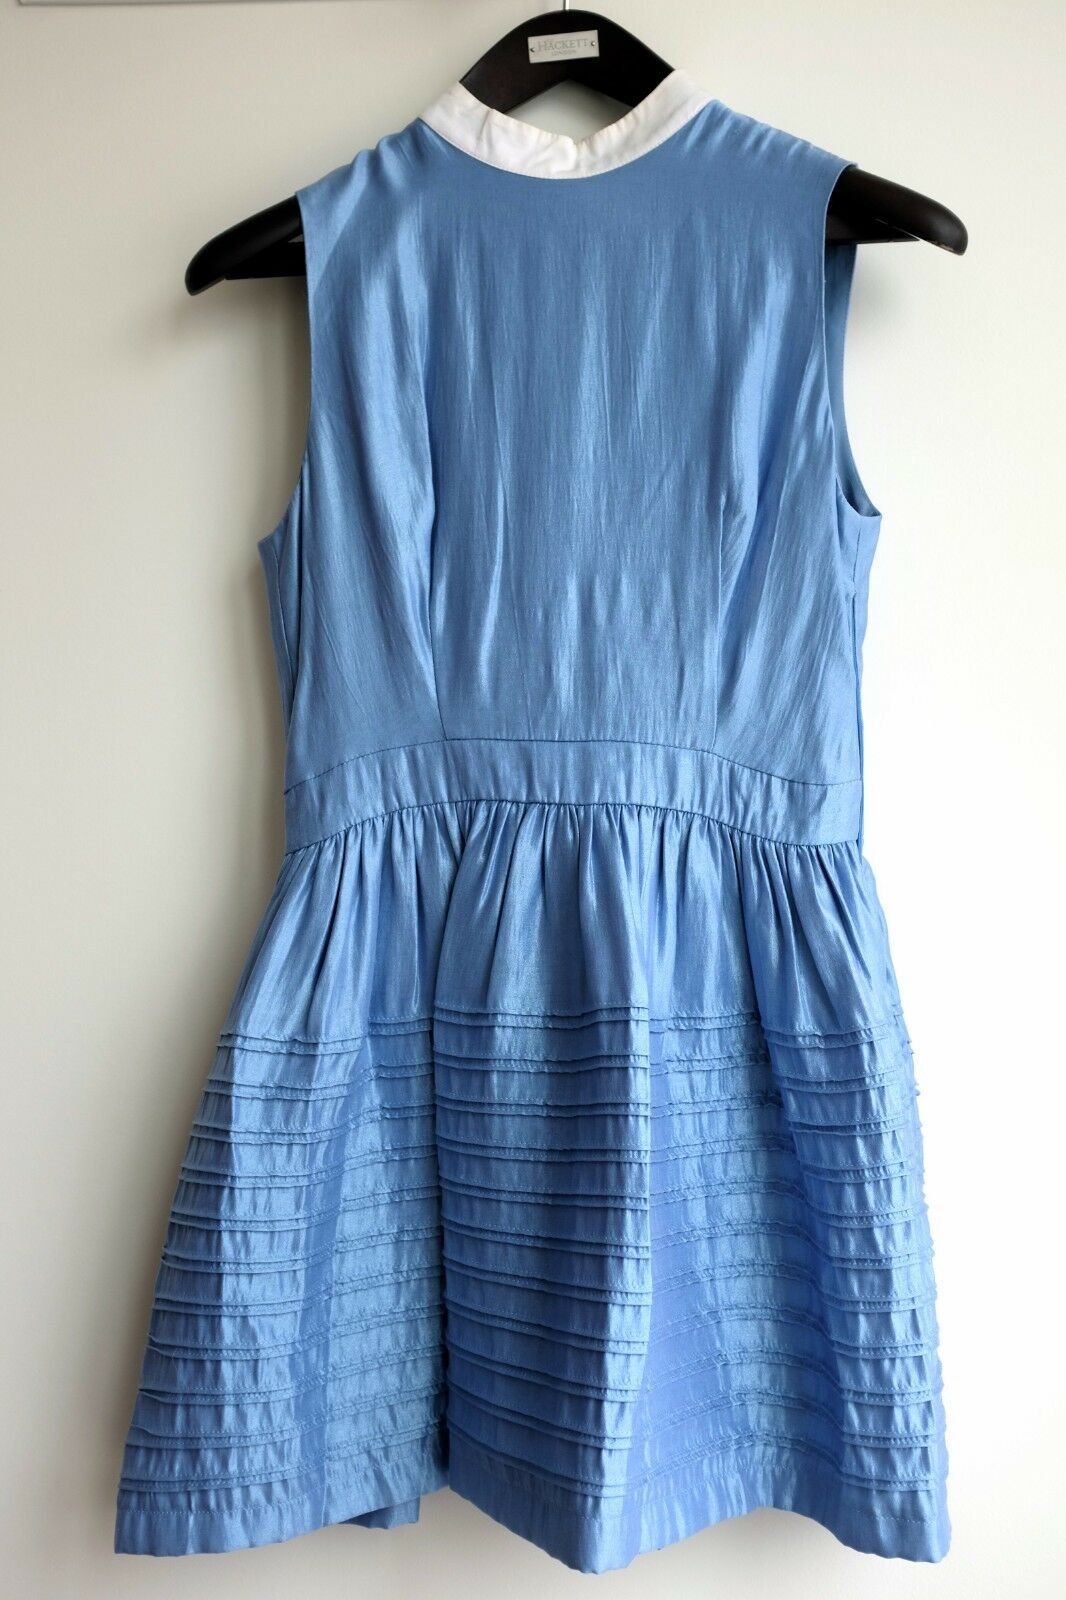 bluee A-line Dress with Gem Button & Side Zip - Size 40 - 32  long from shoulder